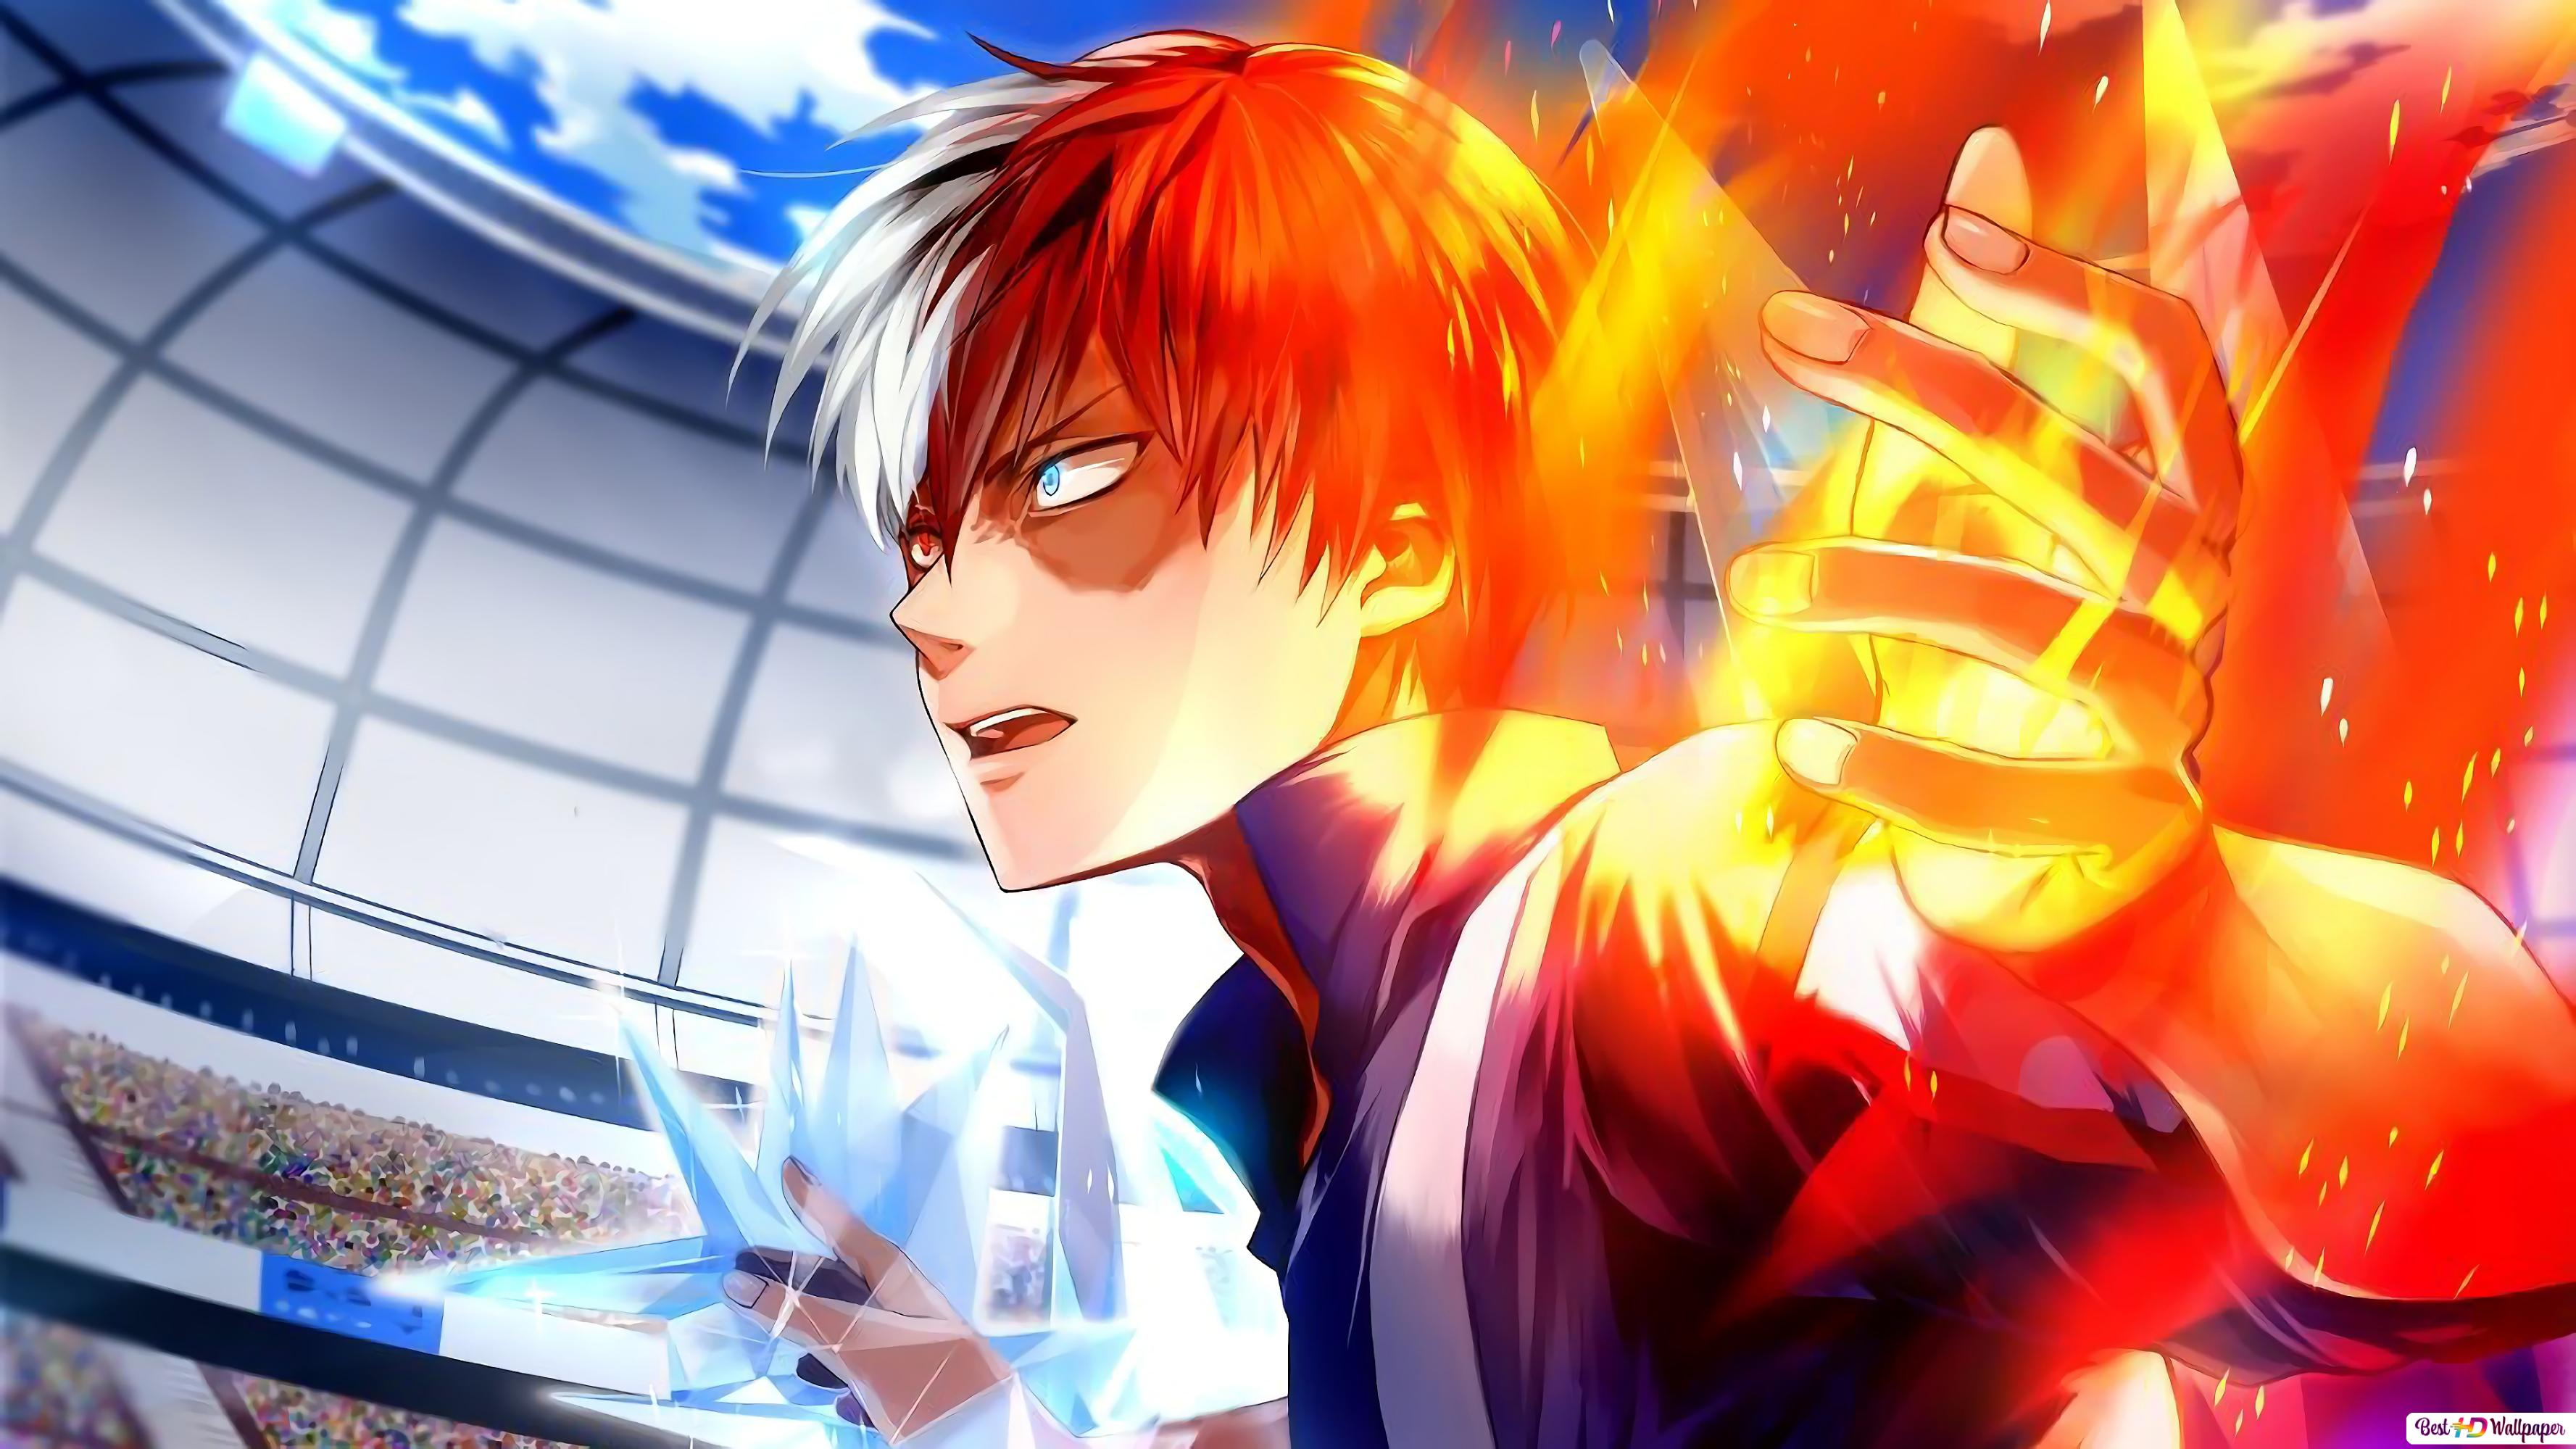 My Hero Academia The Flame Hero Shoto Todoroki Hd Wallpaper